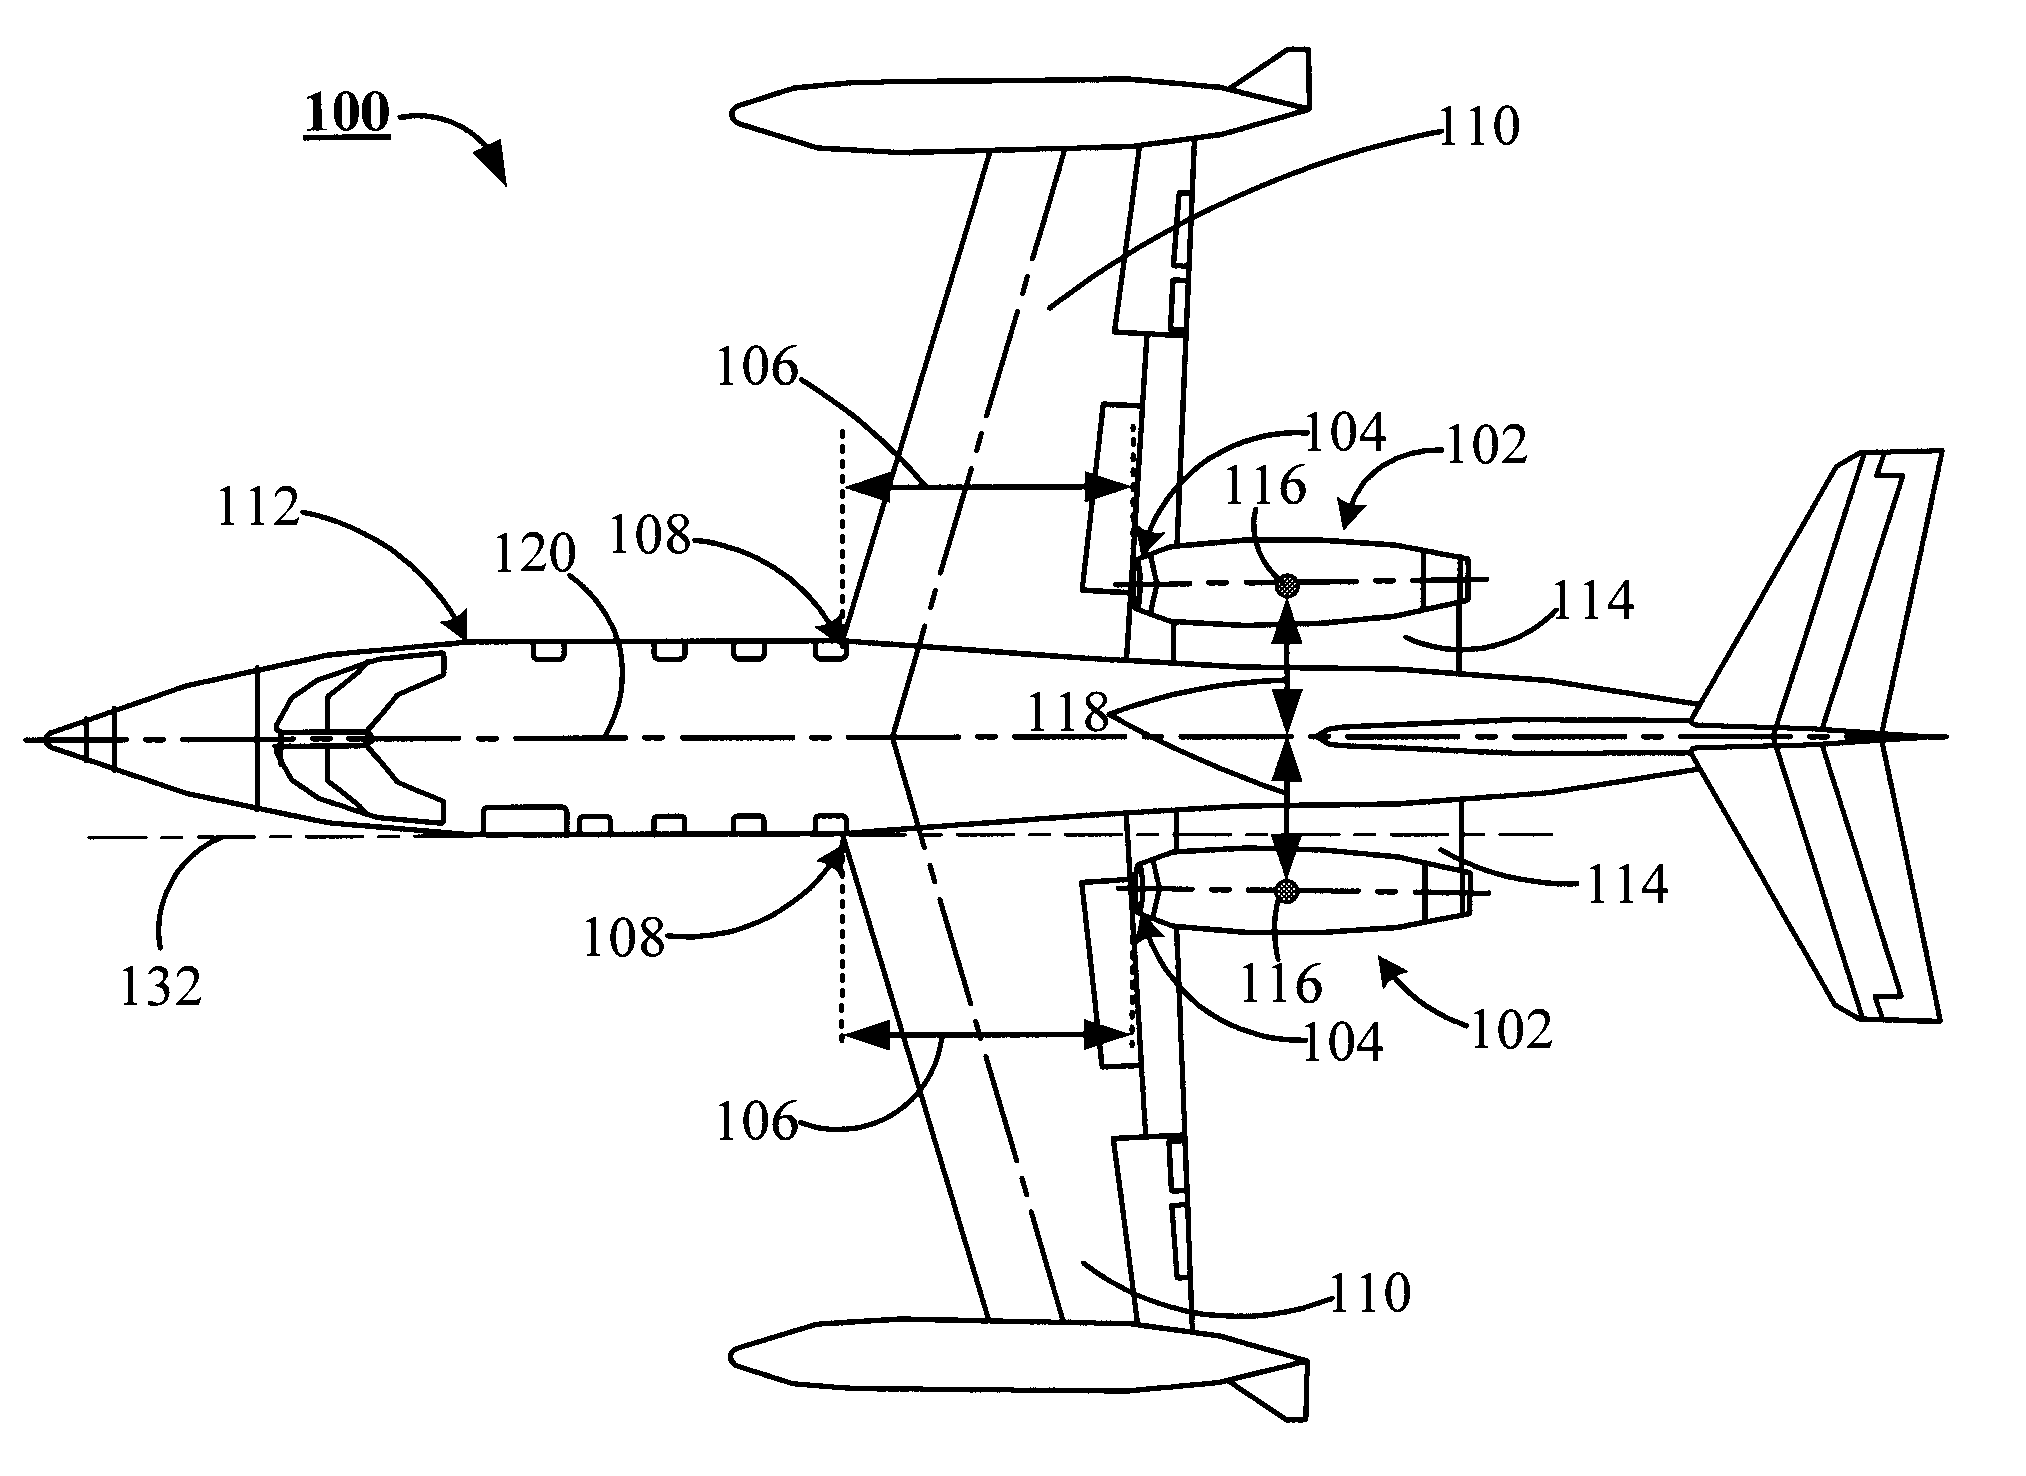 903 together with 2101665 moreover CmV0cmFjdGFibGUtbGFuZGluZy1nZWFyLXNjaGVtYXRpYw also Coloring Pages Airplanes Jets moreover King Air 100 200 300 Divider Fitting. on learjet 23